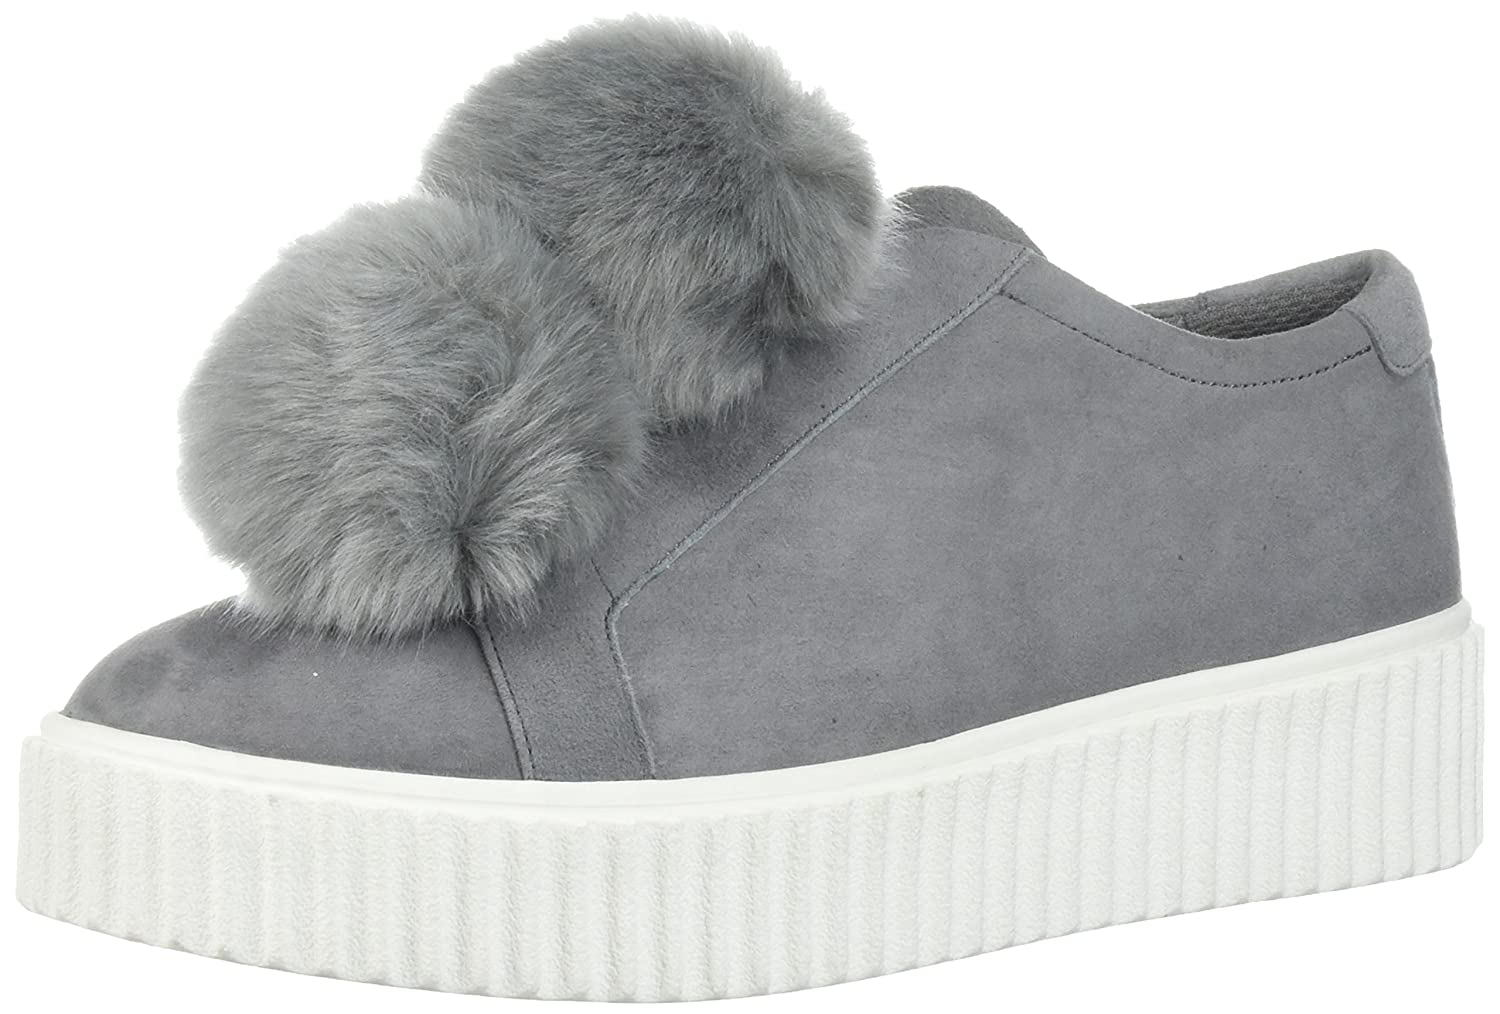 The Fix Women's Talon Slip-on Poms Fashion Sneaker B072Y3W76P 7 B(M) US|Elephant Grey Suede